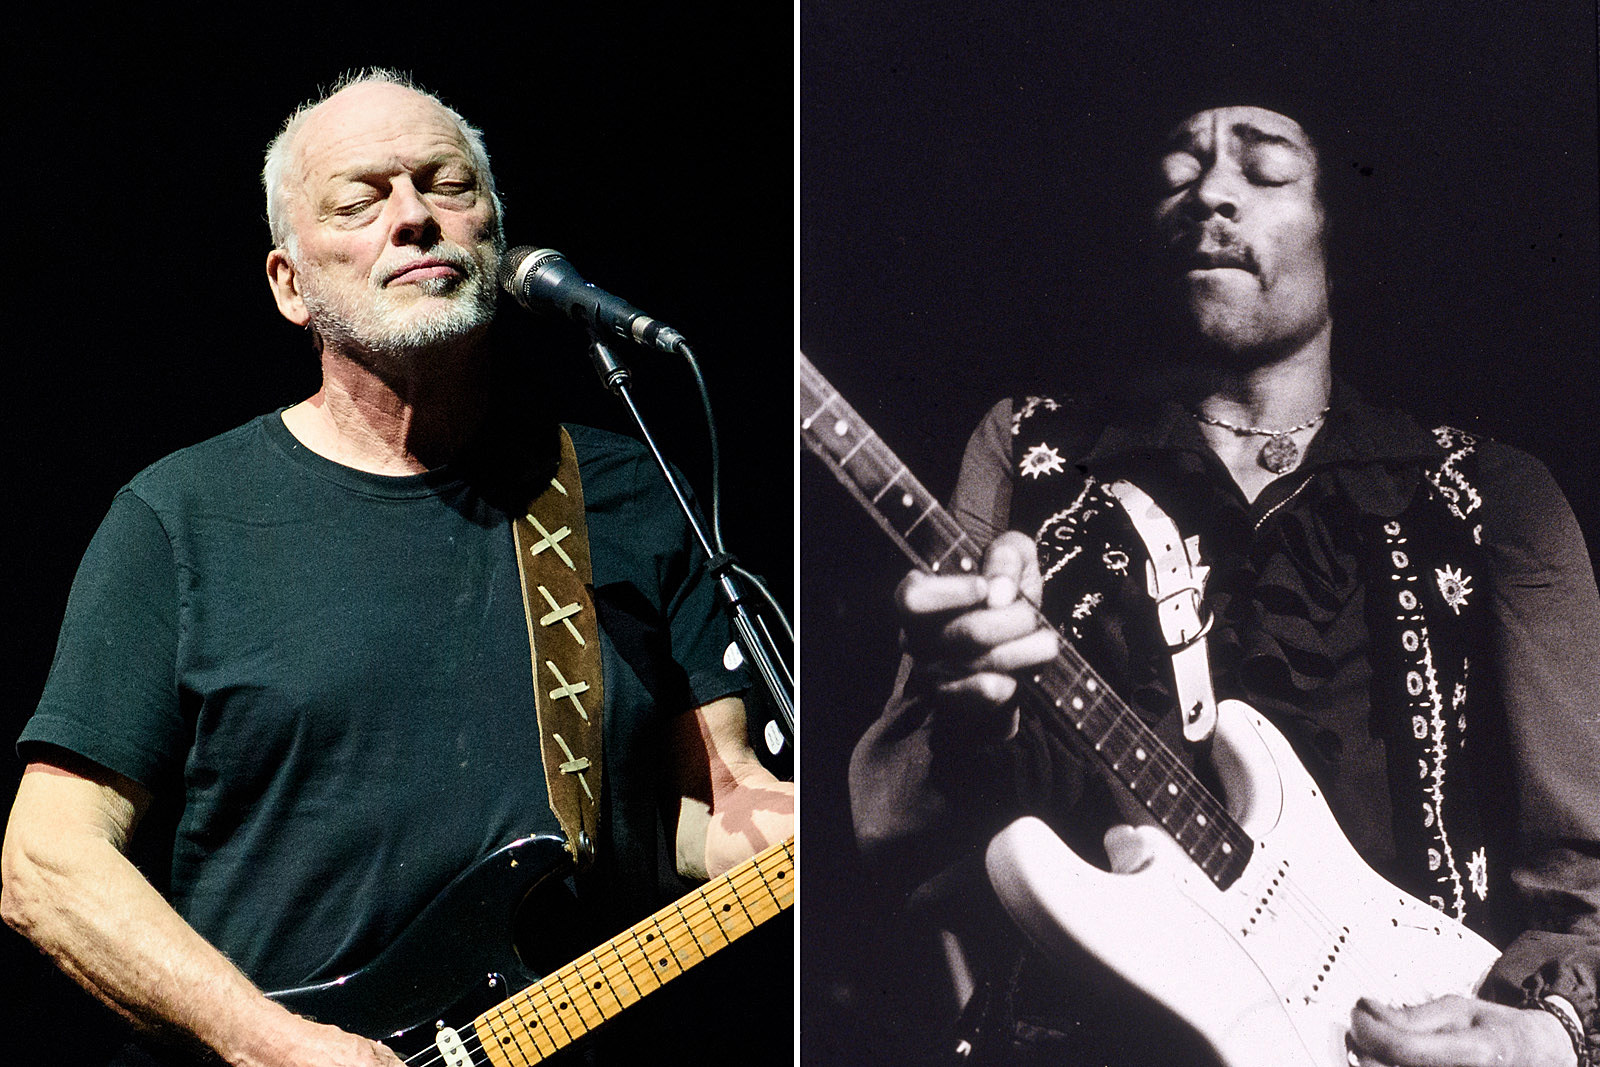 How David Gilmour Wound Up Mixing Jimi Hendrix's Live Sound